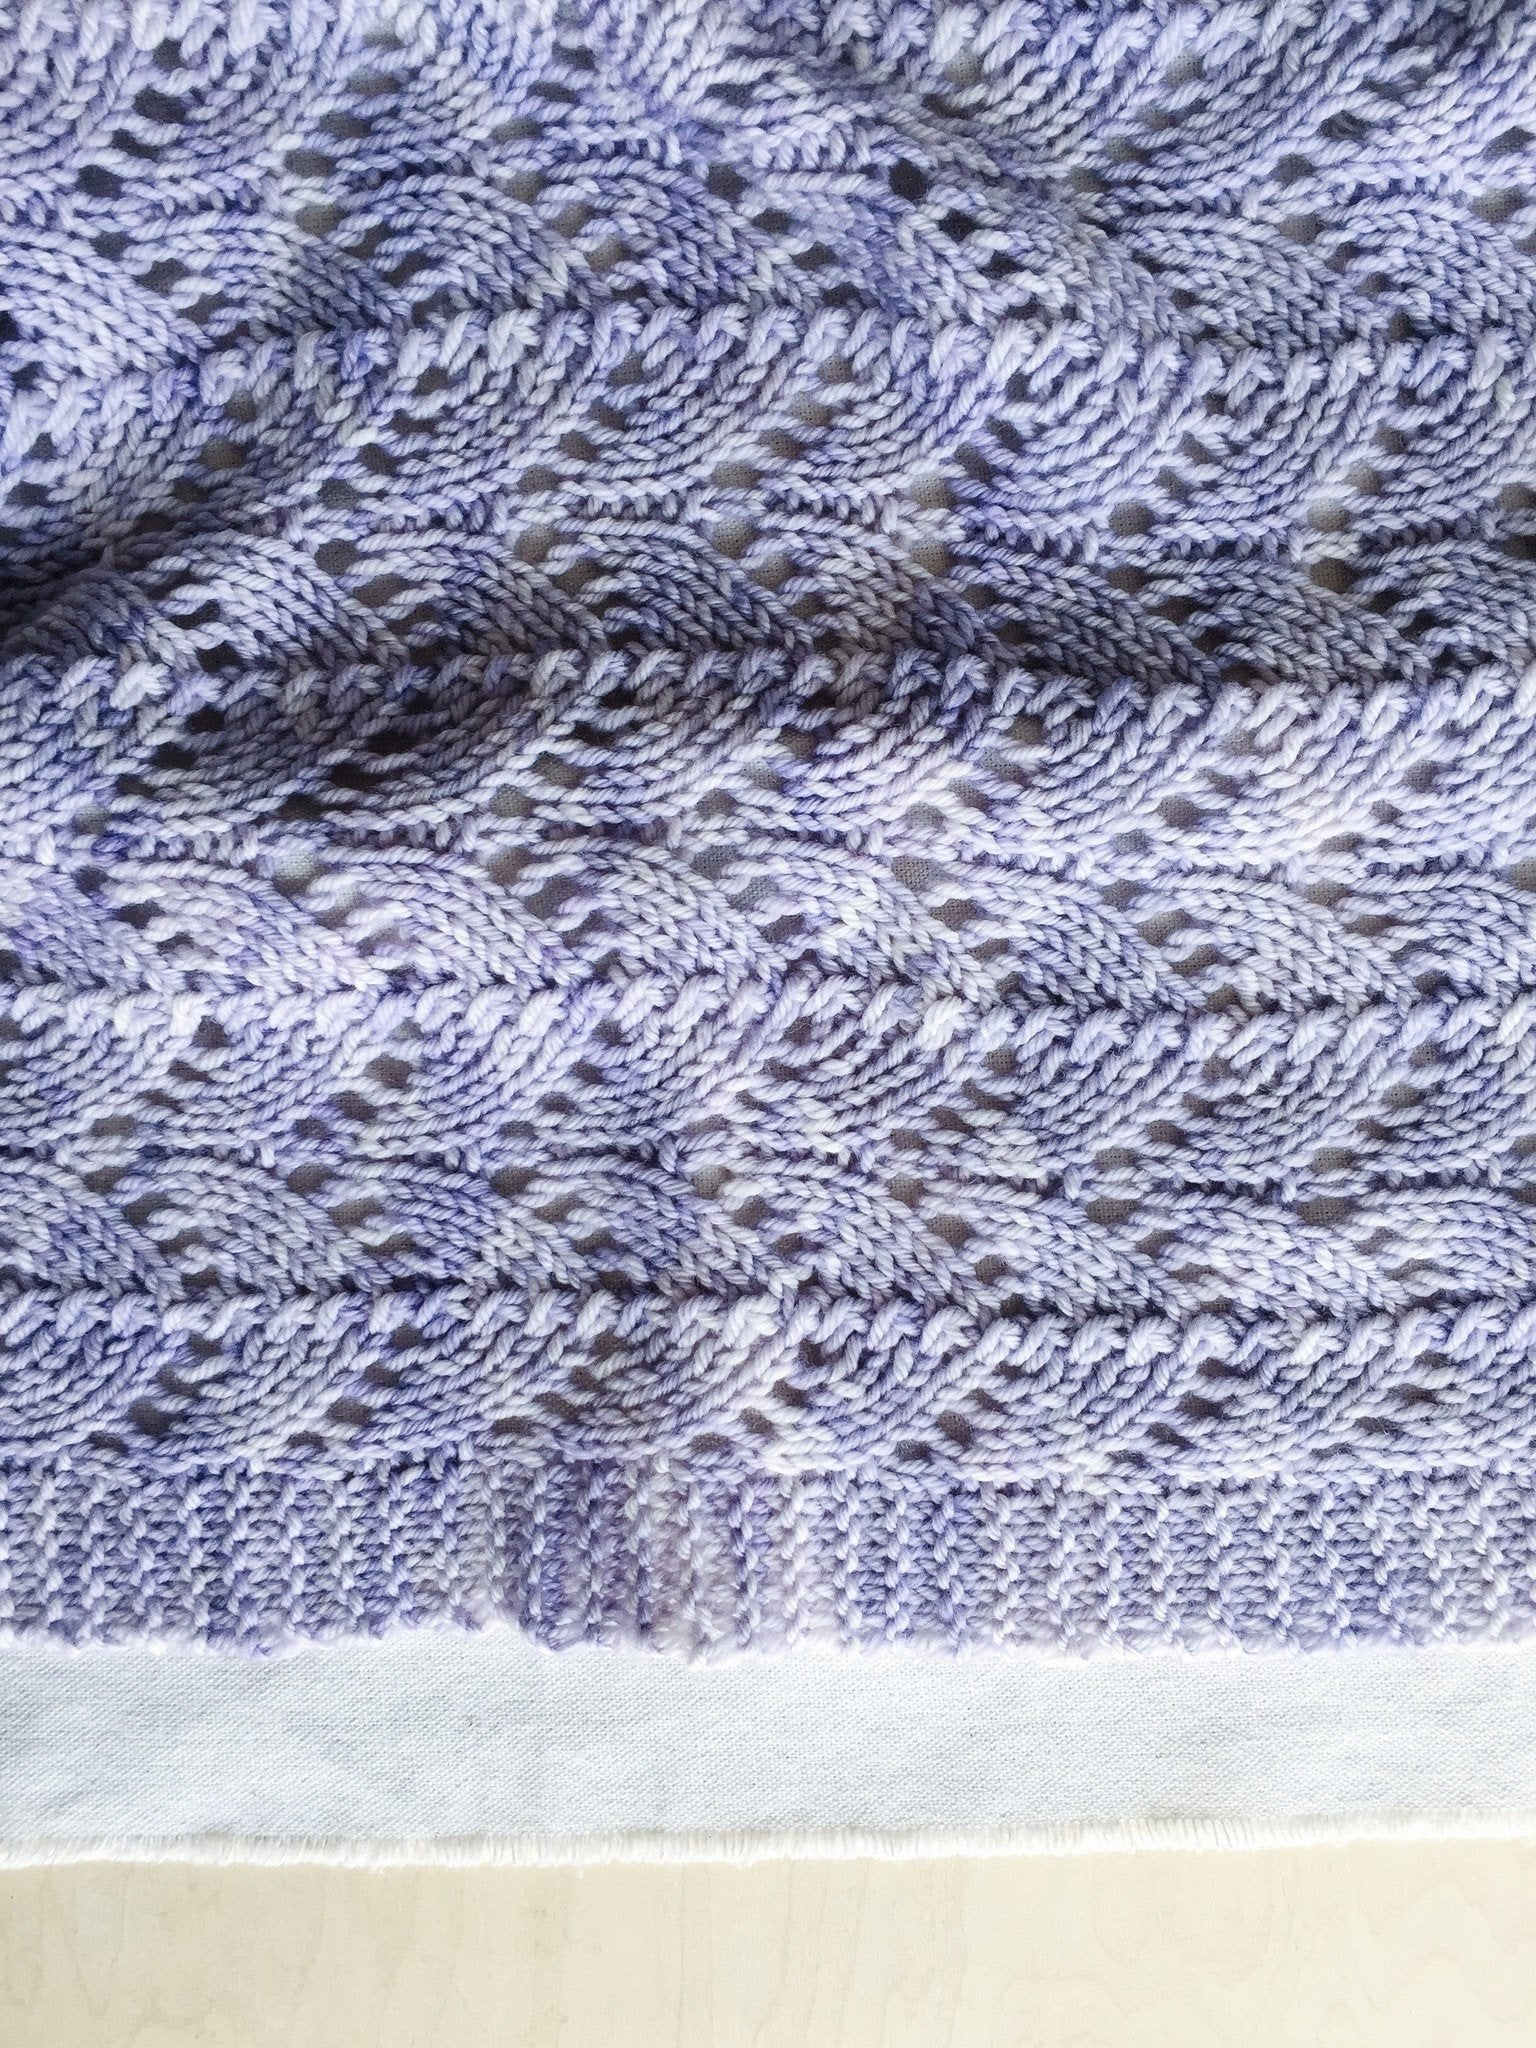 MAD | TOSH Pattern Heirloom Blanket